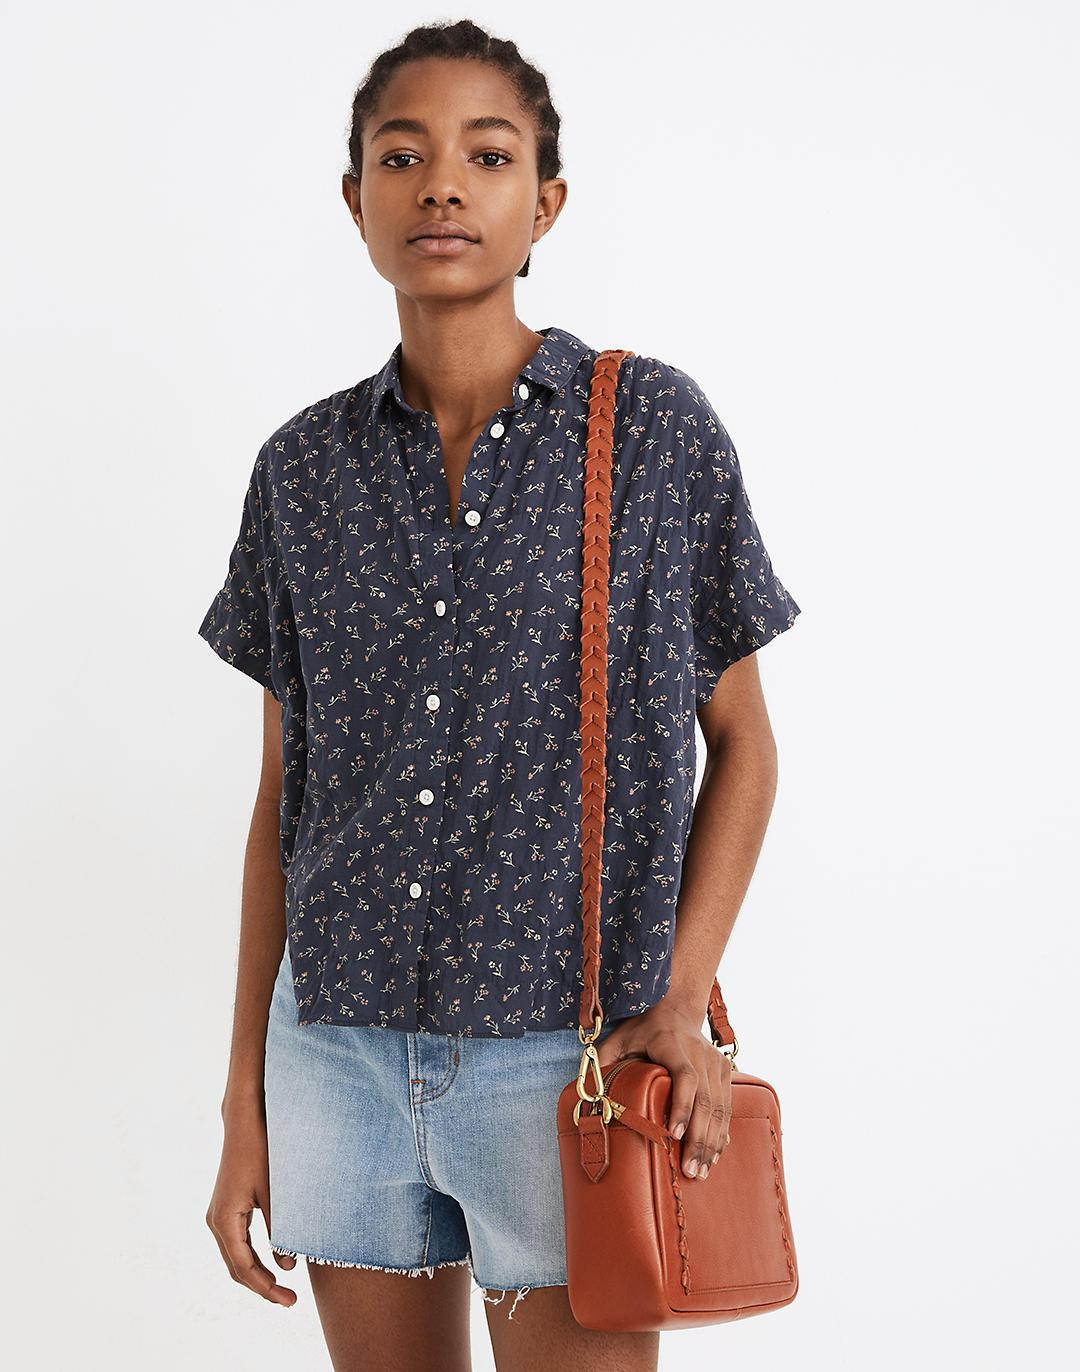 Hilltop Shirt in Adorable Ditsy